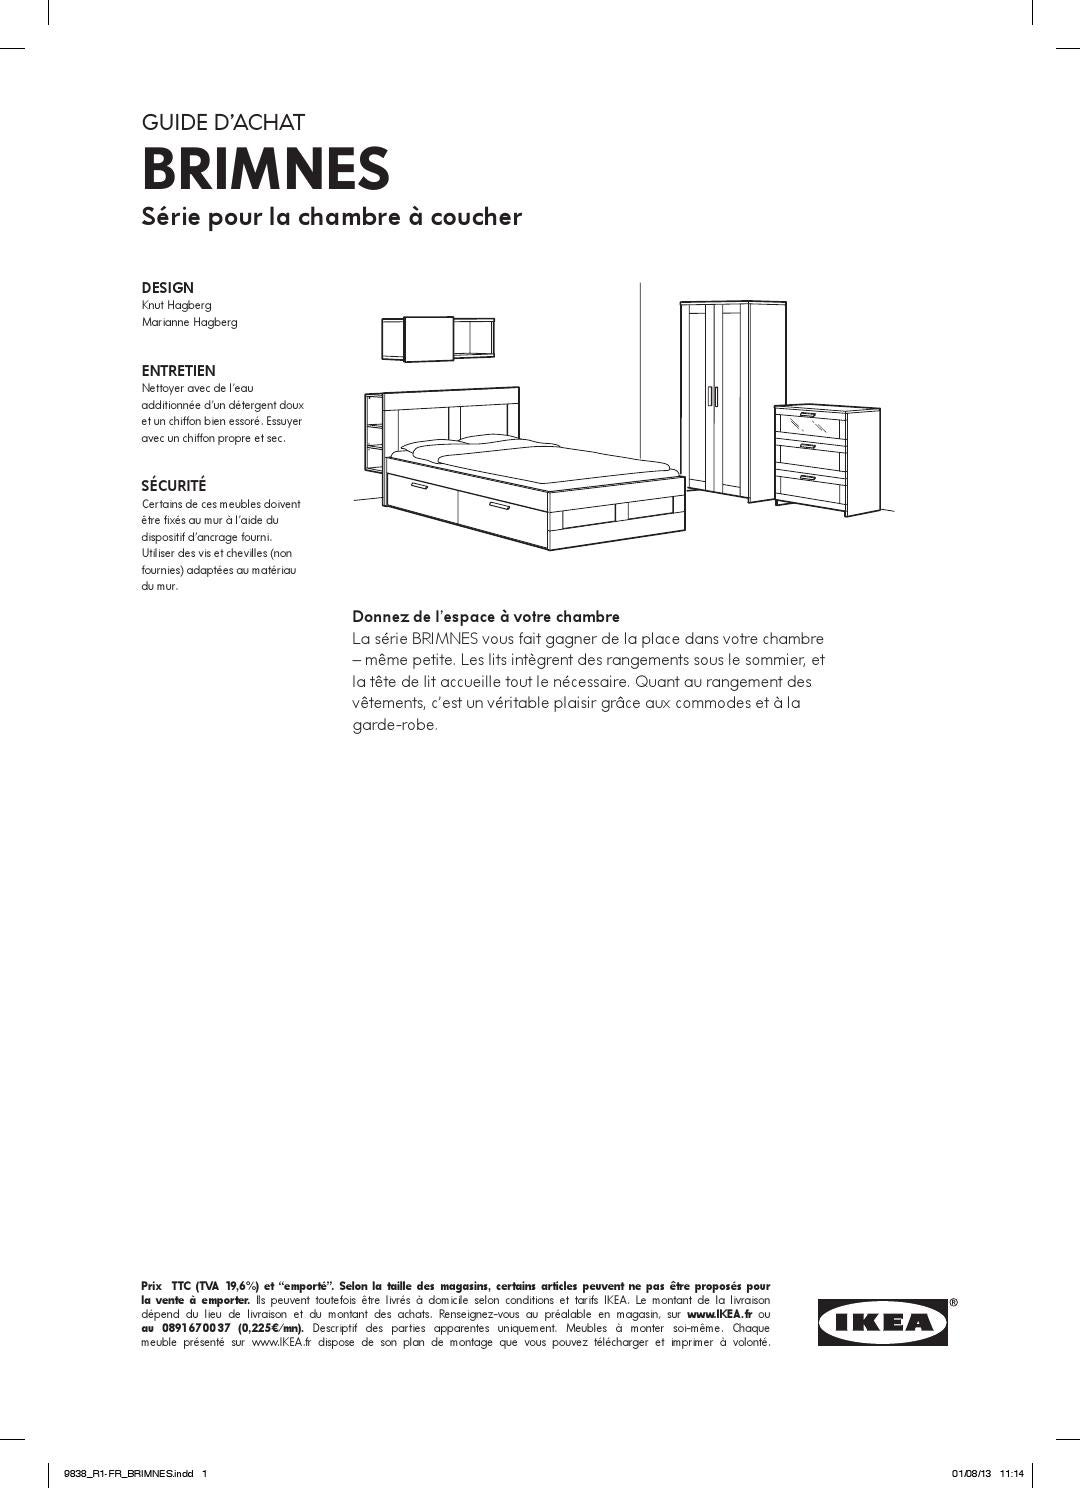 brimnes ikea fr by ikea catalog issuu. Black Bedroom Furniture Sets. Home Design Ideas